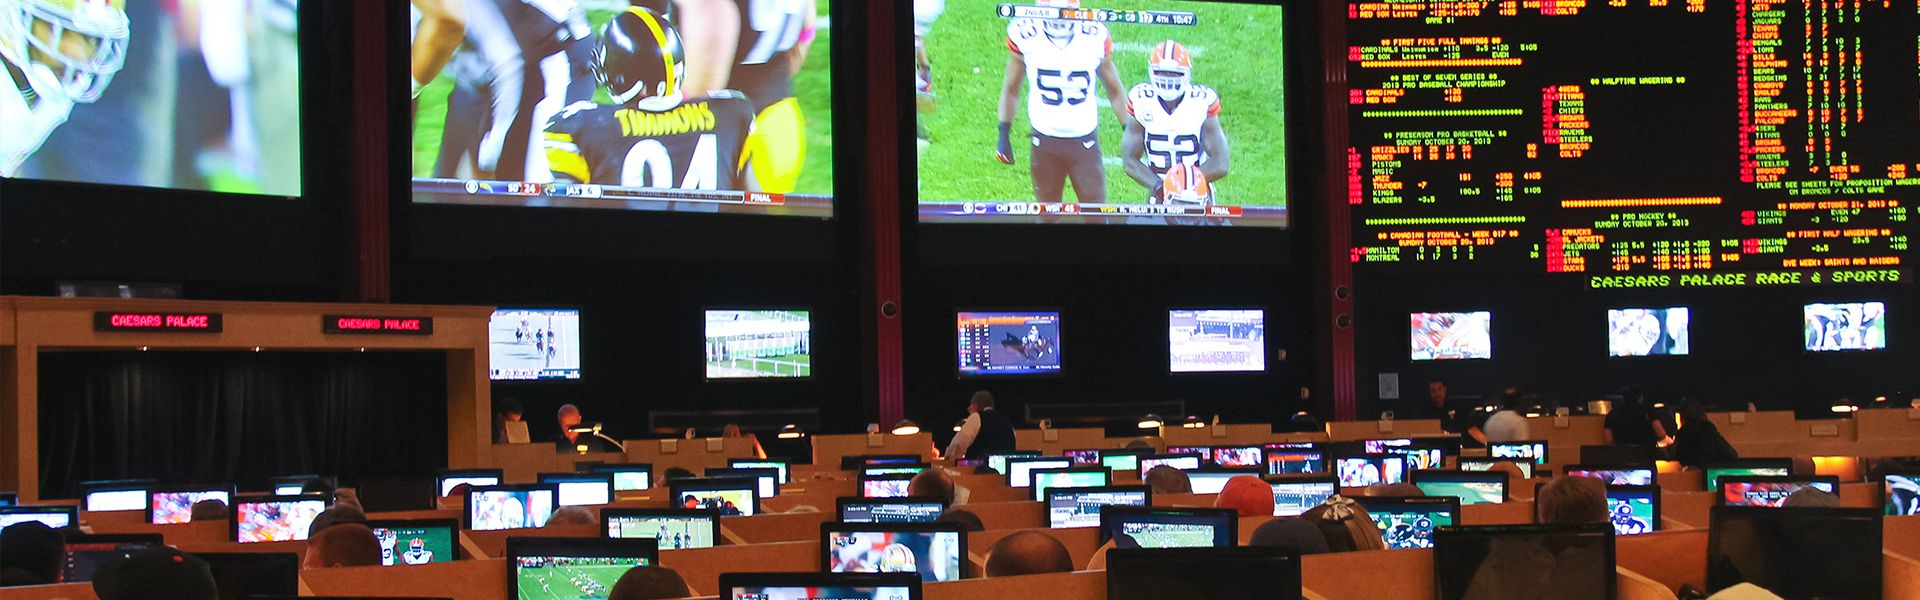 Sports Betting - Header Image 03